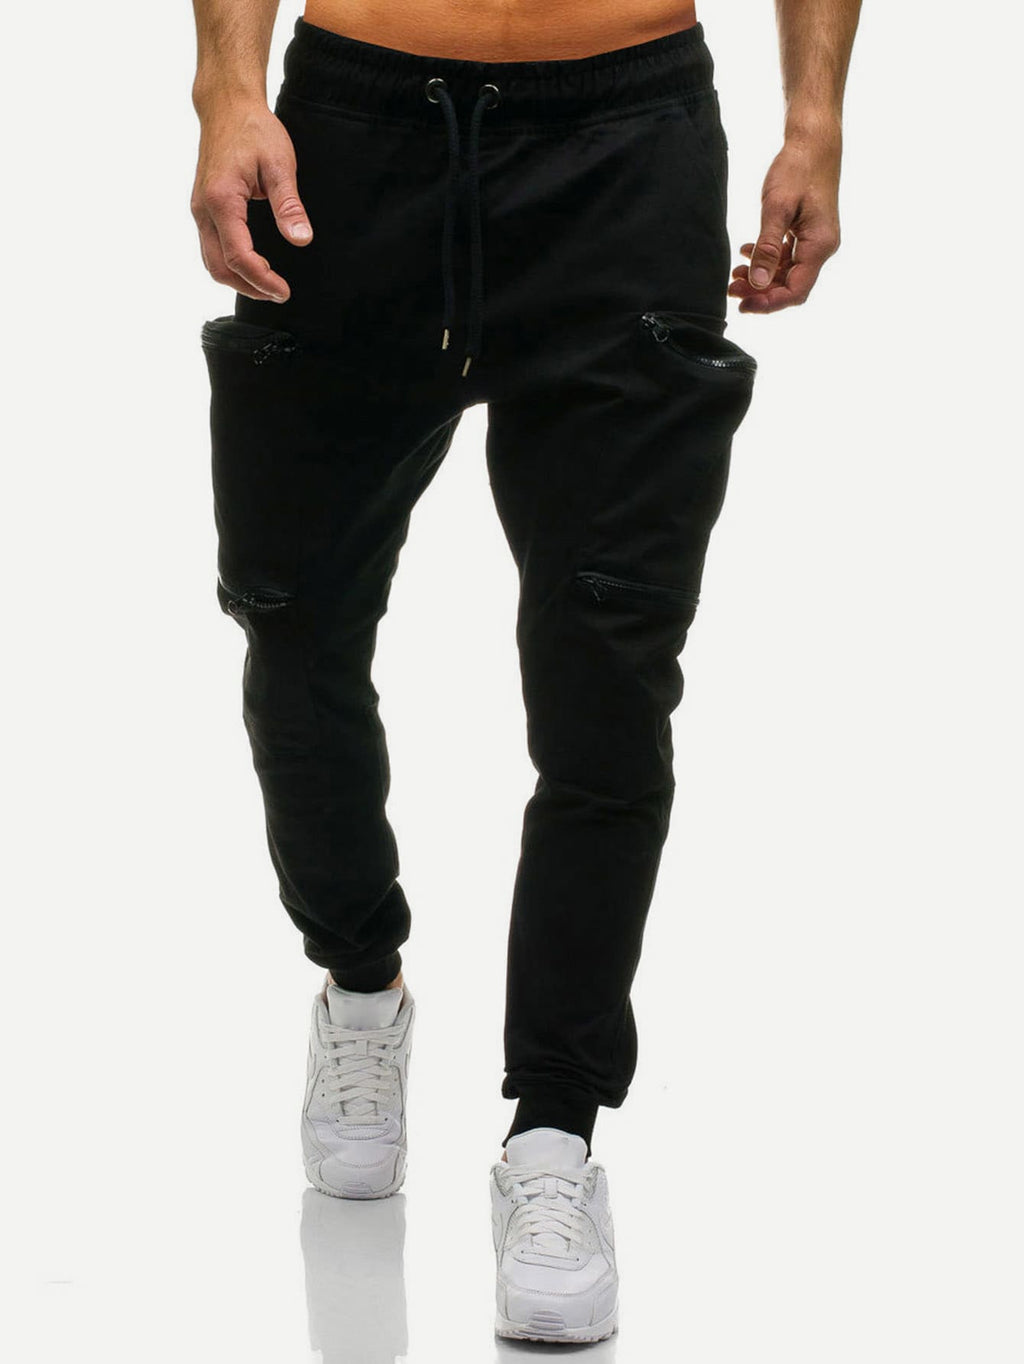 Men Pocket Plain Drawstring Pants